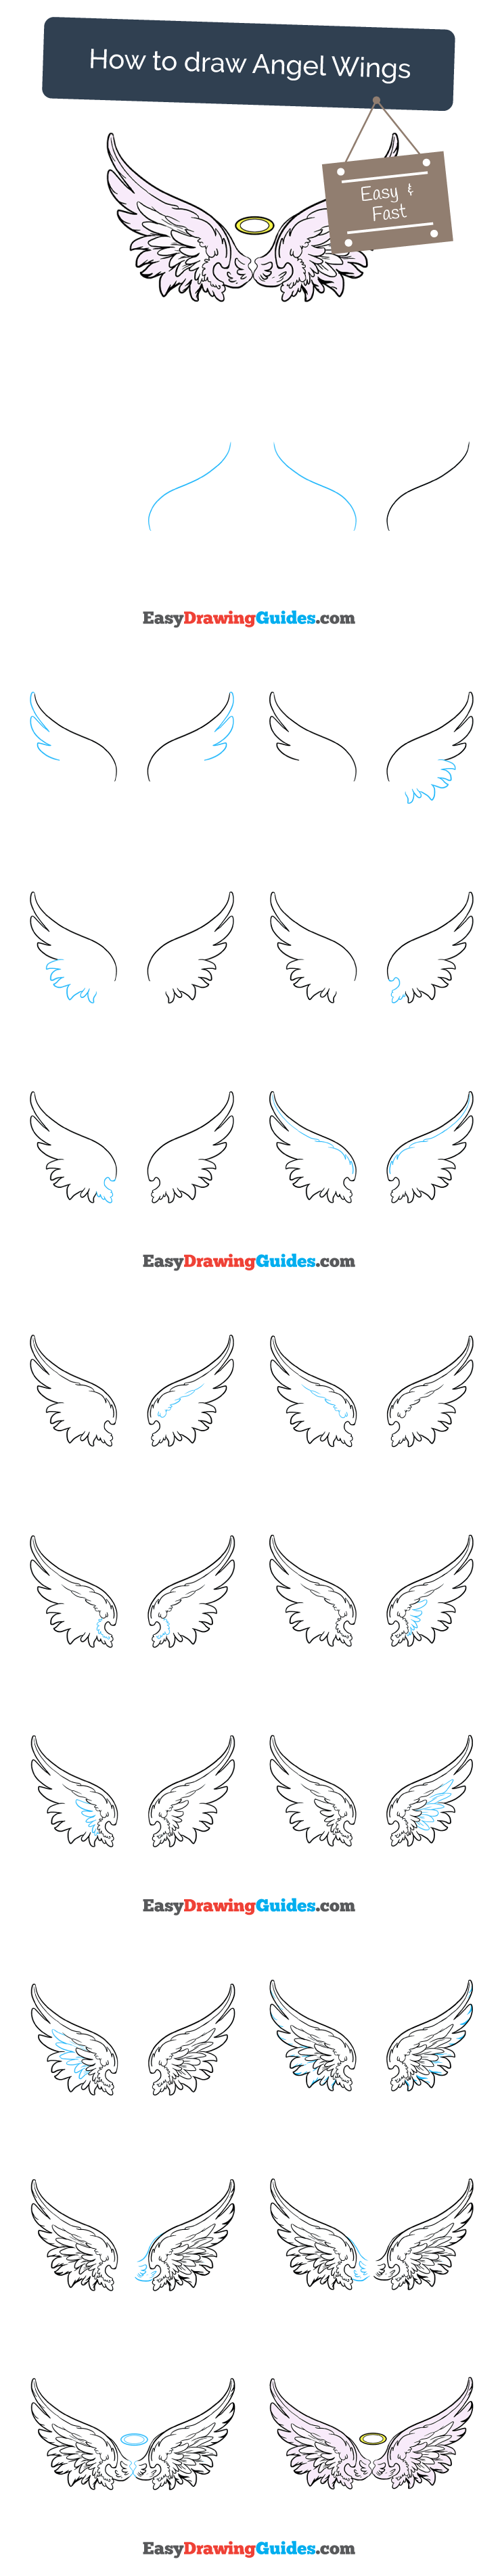 How To Draw Angel Wings In A Few Easy Steps Doodles Pinterest